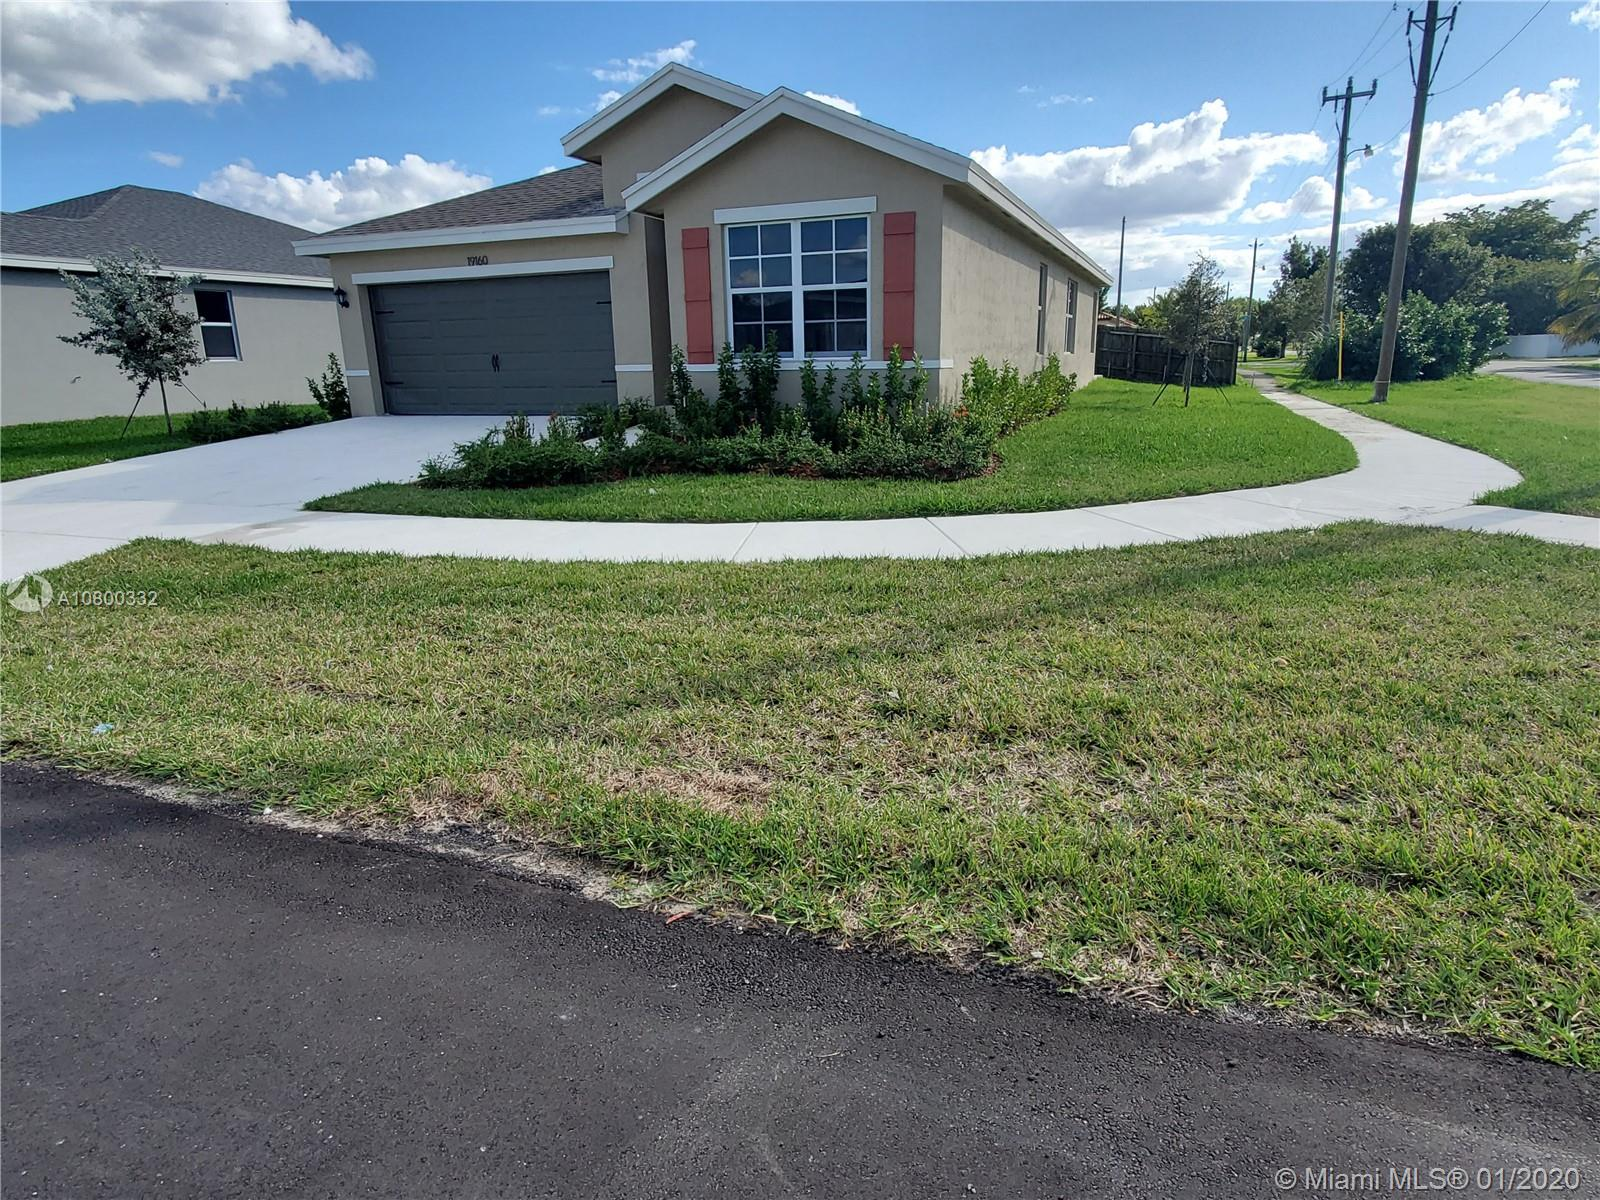 19160 SW 317th Ter, Homestead, FL 33030 - Homestead, FL real estate listing